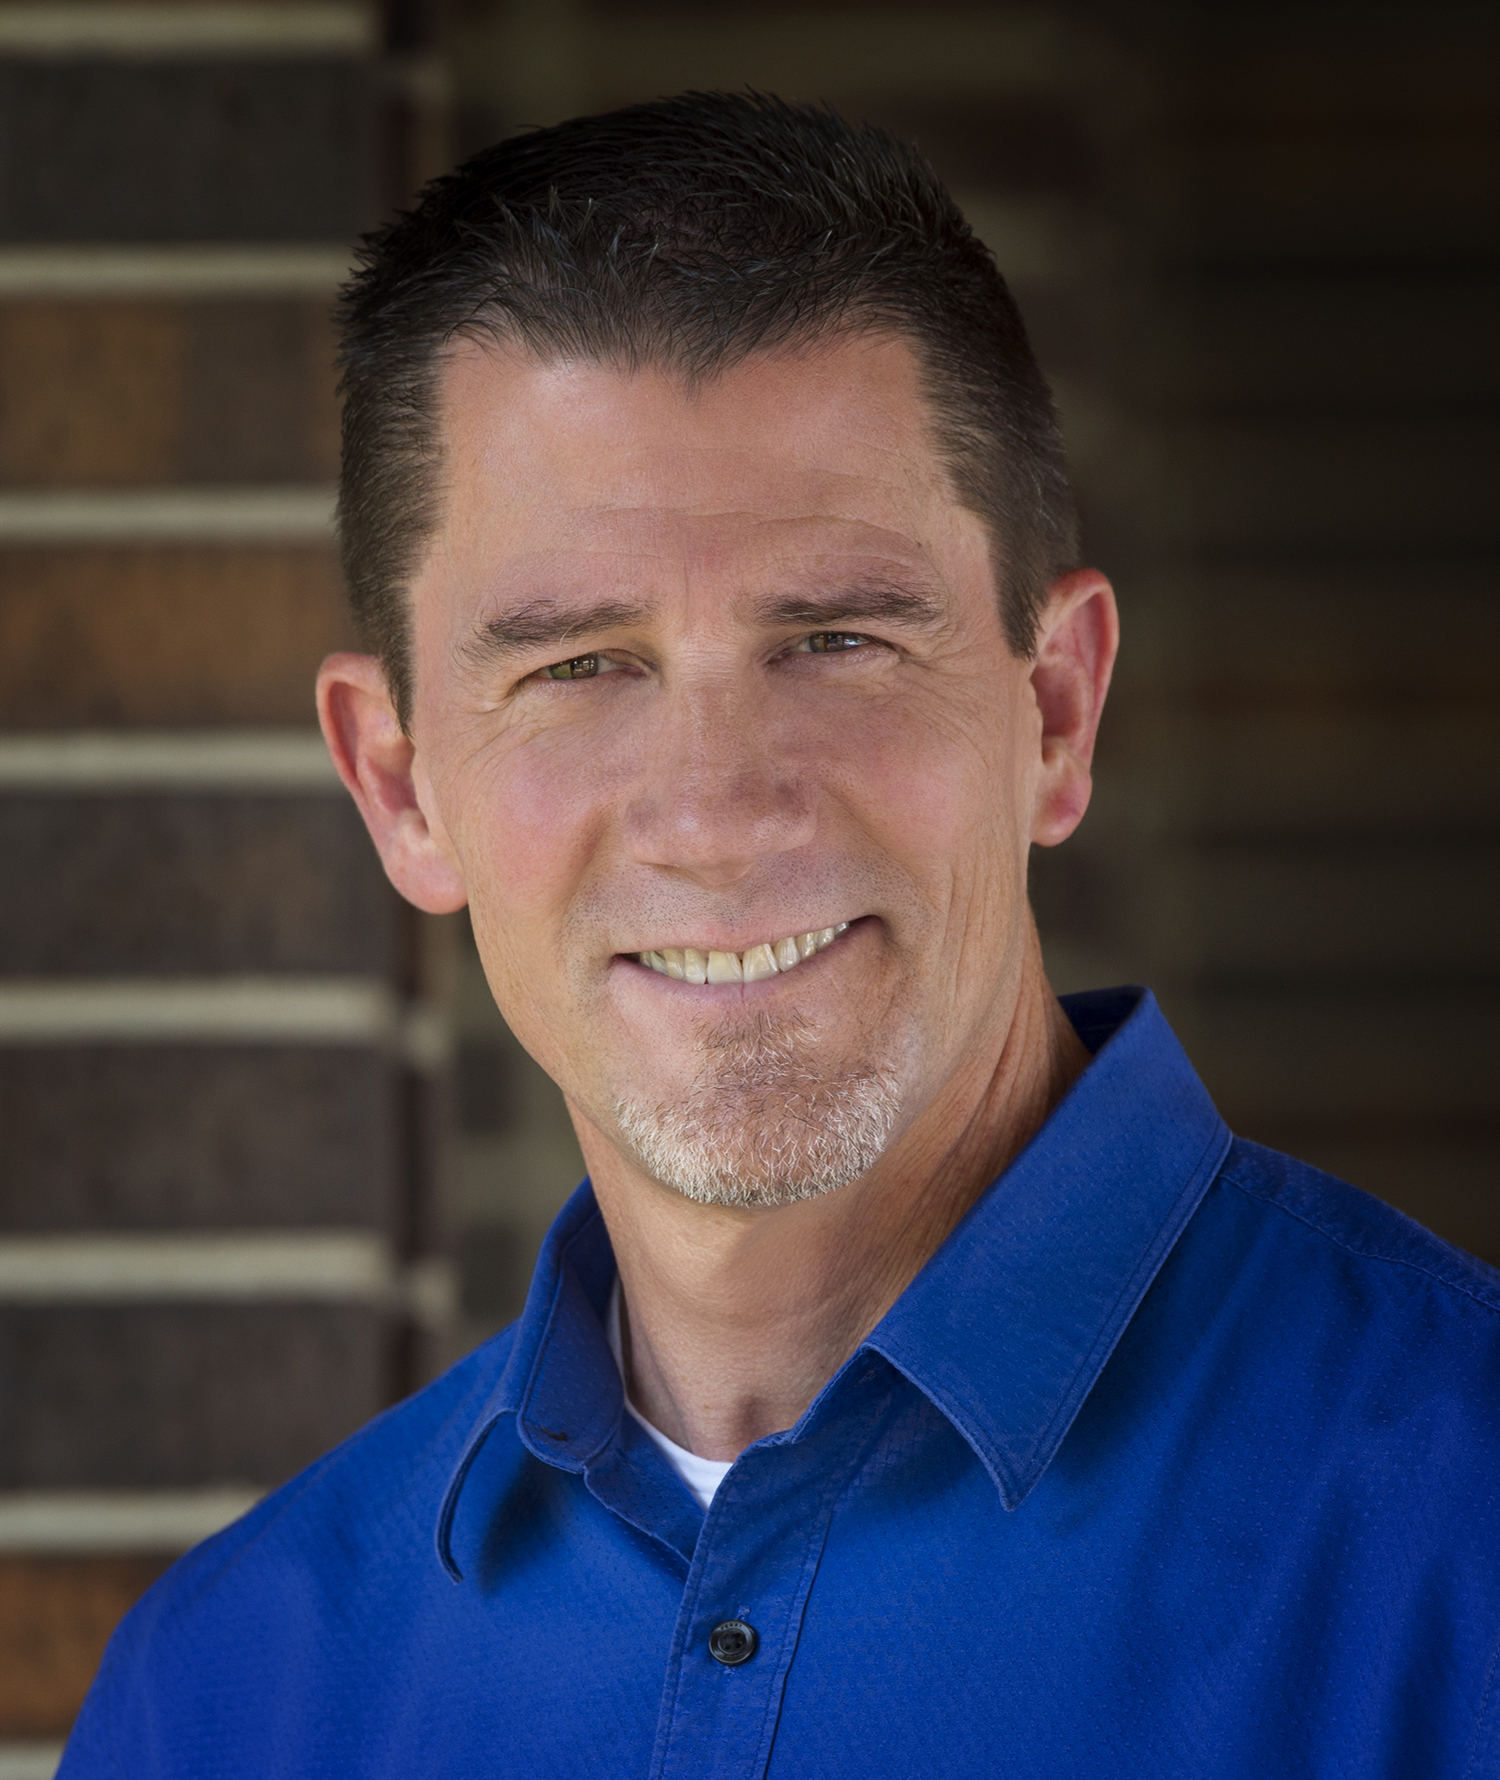 David Manner elected as fifth KNCSB executive director